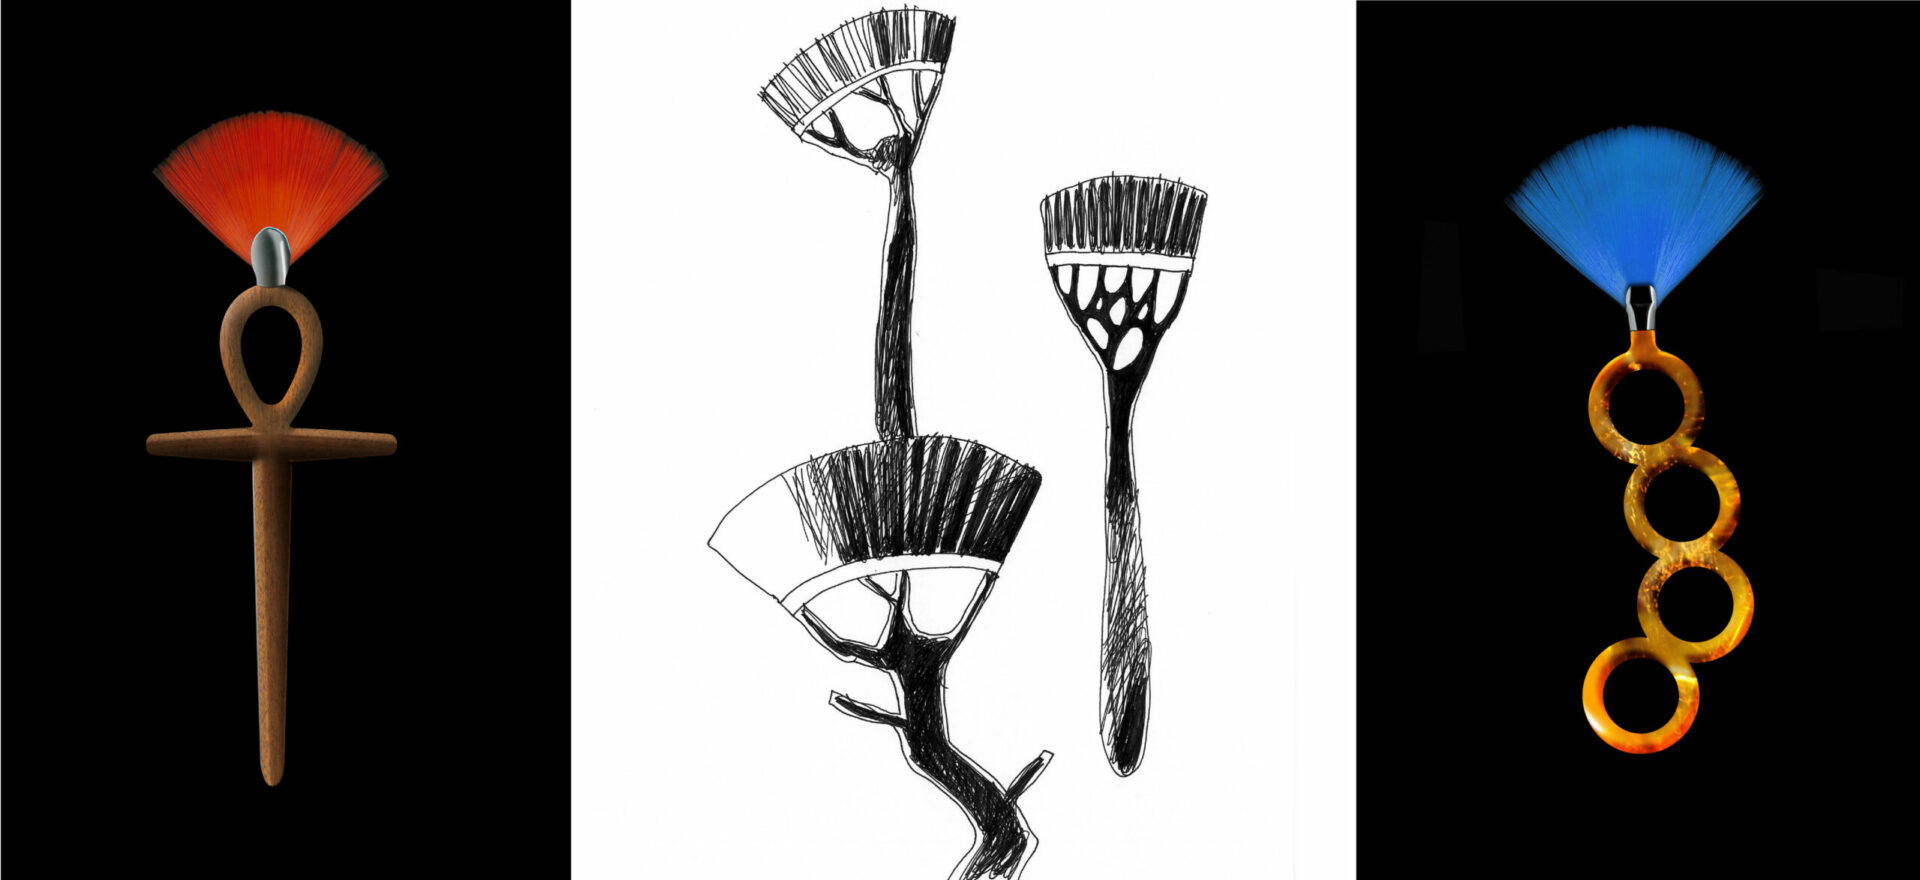 Yuubi brushes_Limited Collection_Drawing_Beauty design_Drawing_Mario Trimarchi Design_Products Artworks